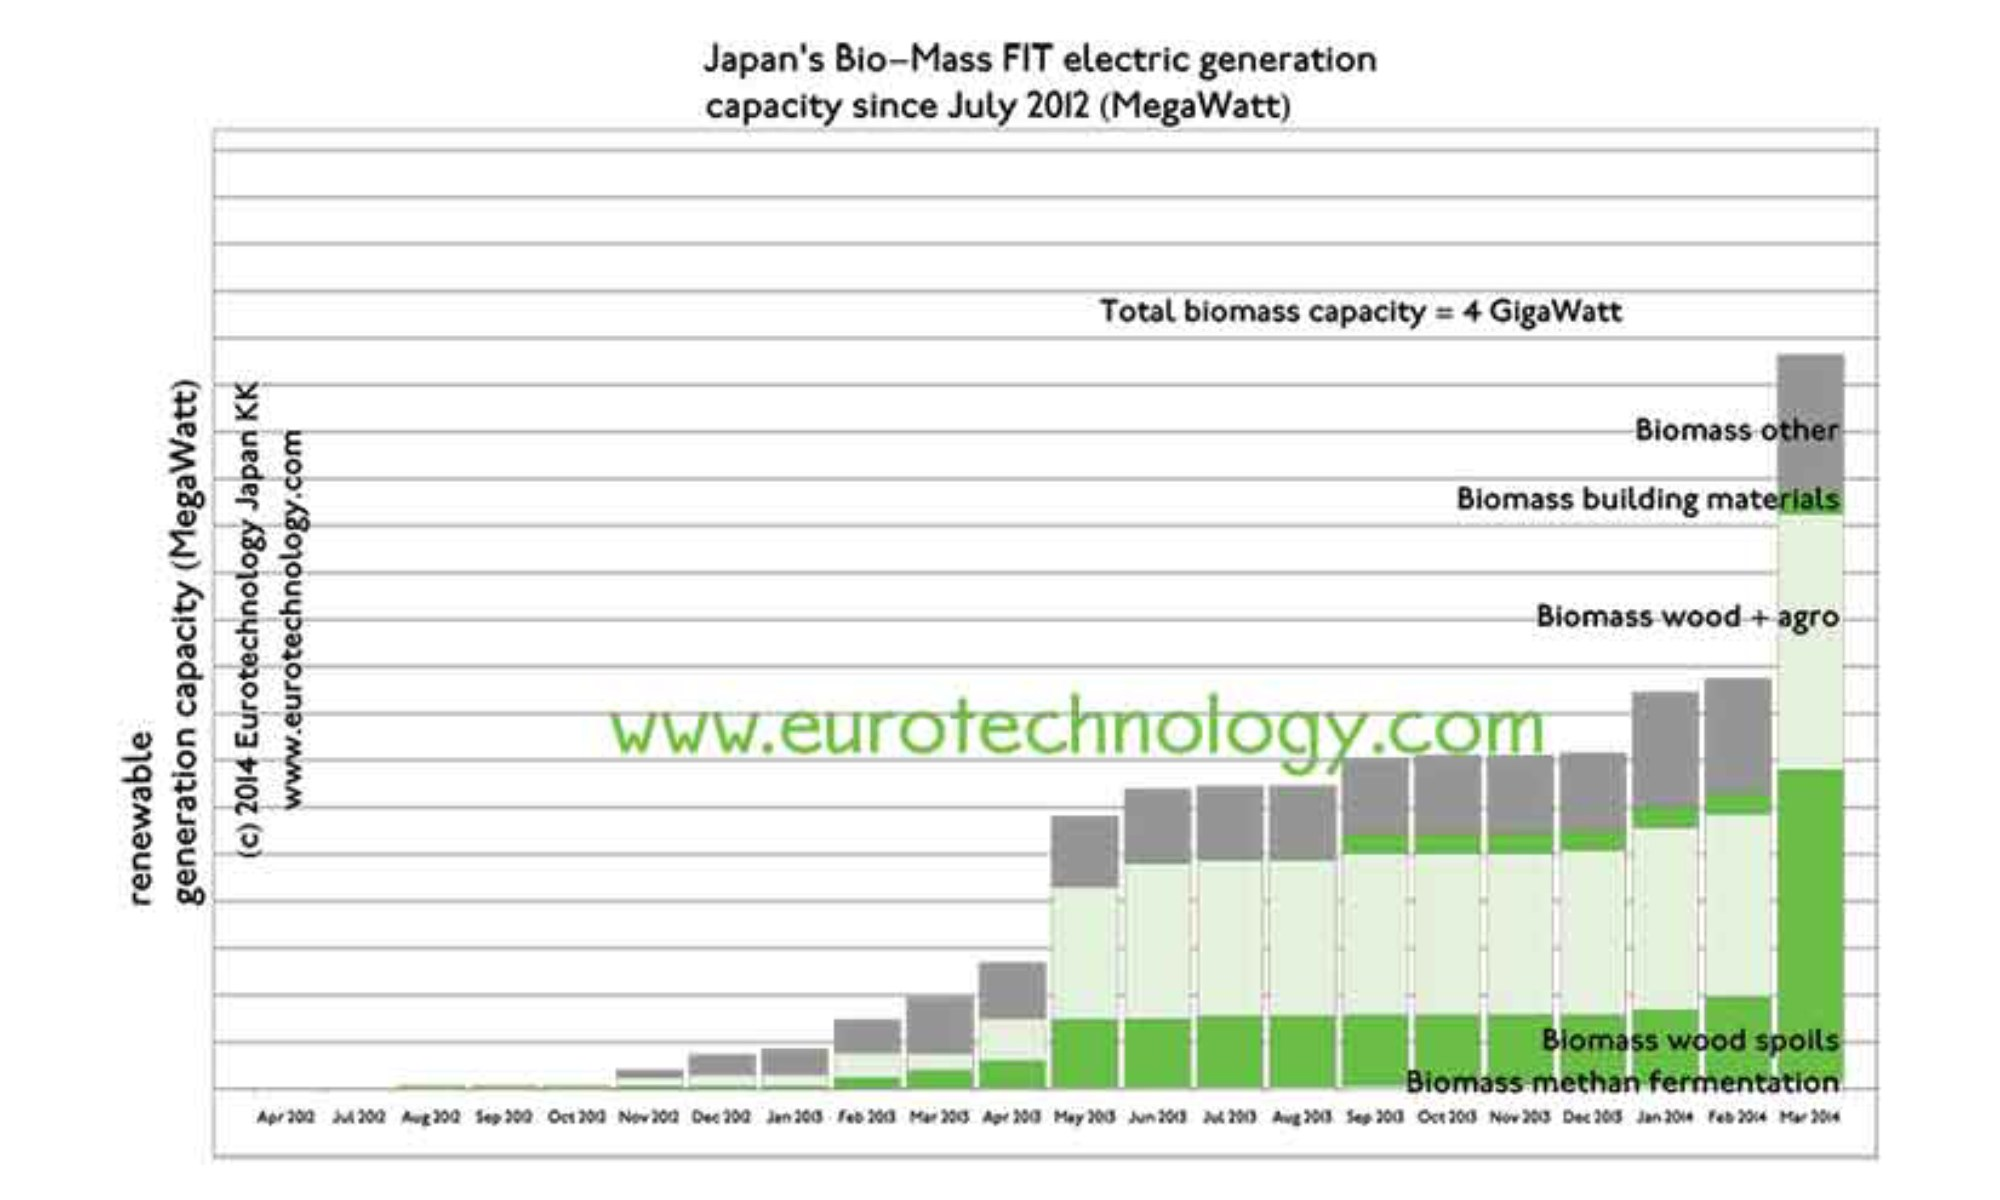 biomass in Japan eurotechnology.com